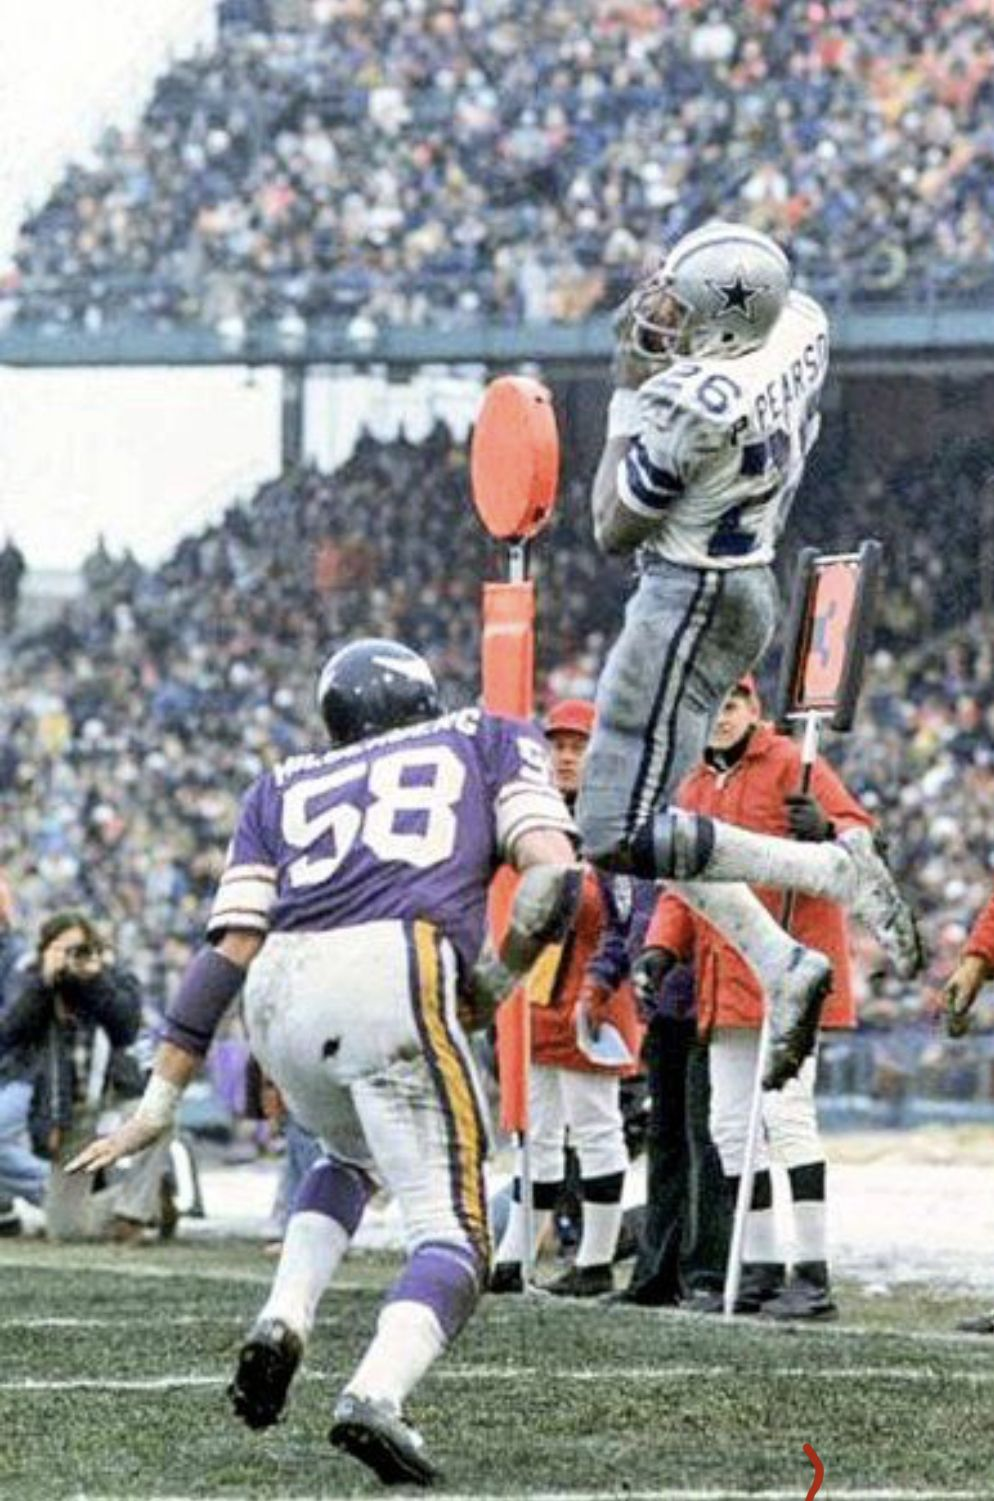 Pin by John Criscione on NFL in 2020 Cowboys football